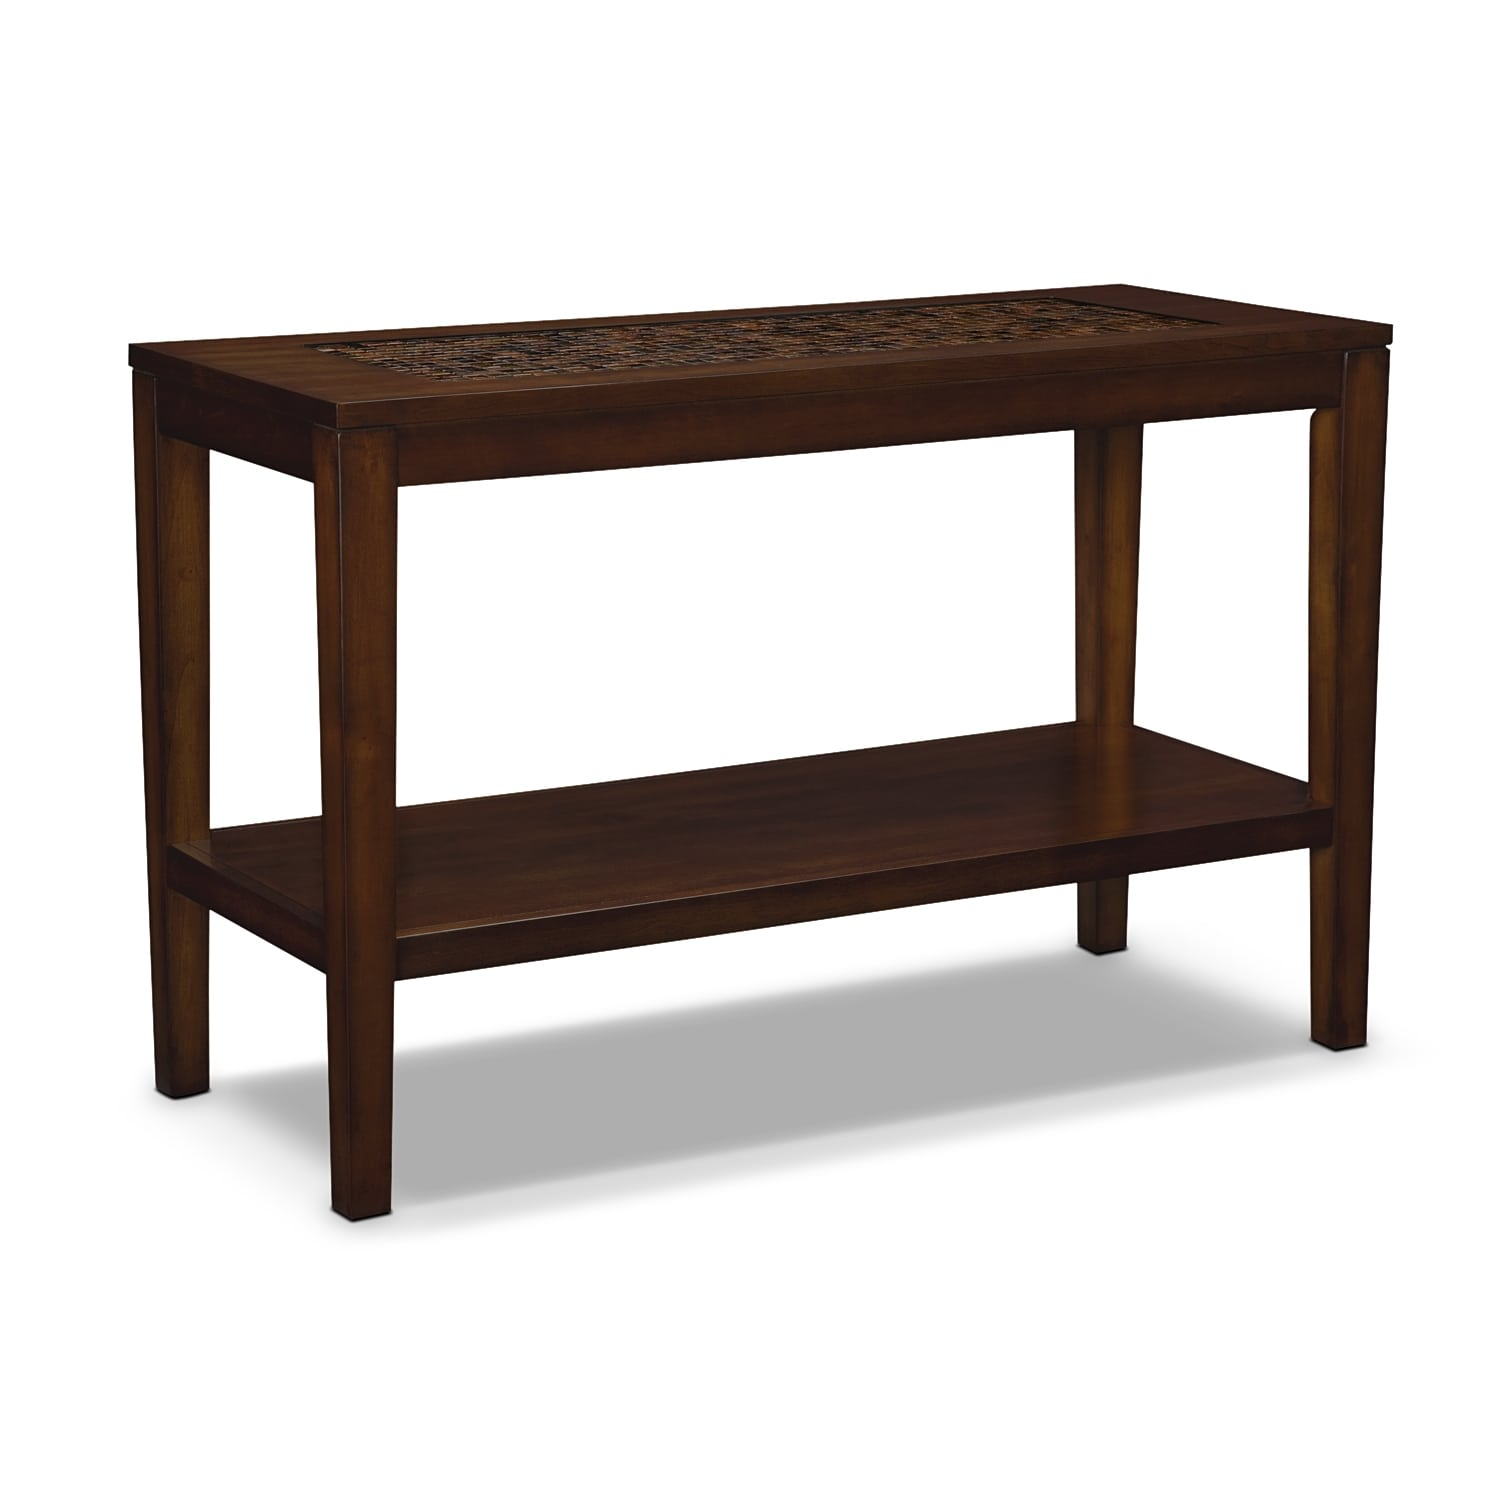 Carson sofa table brown value city furniture for Table furniture